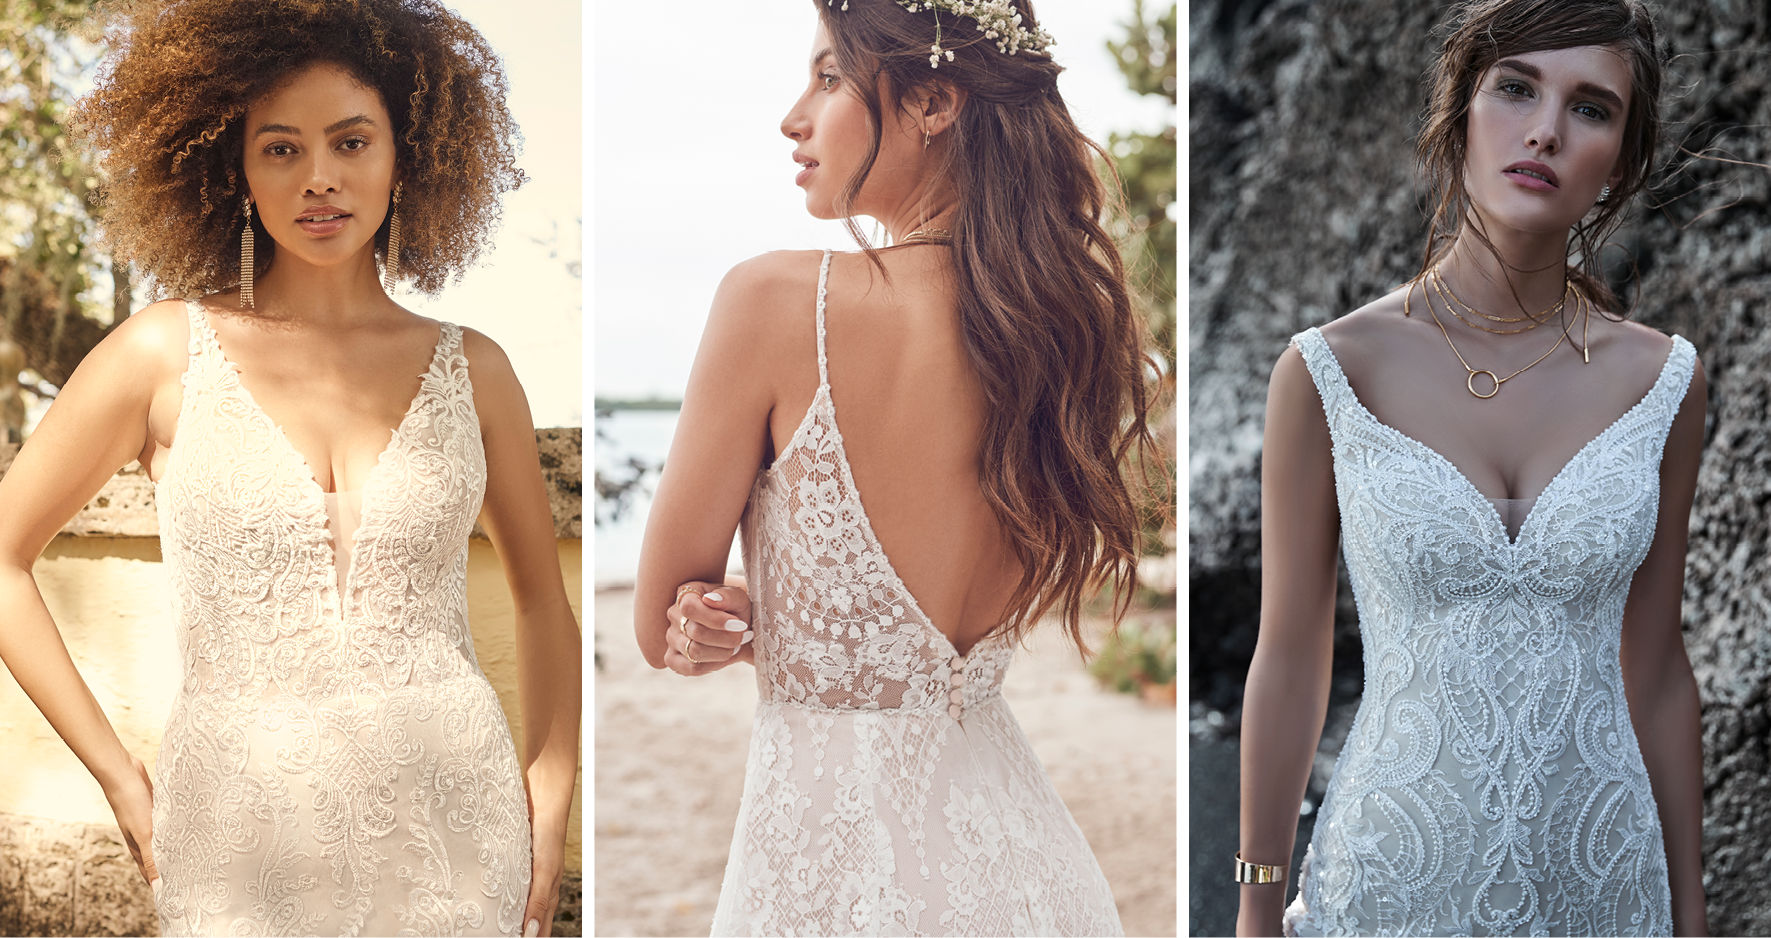 Three Brides Wearing Vintage Lace Wedding Dresses by Maggie Sottero